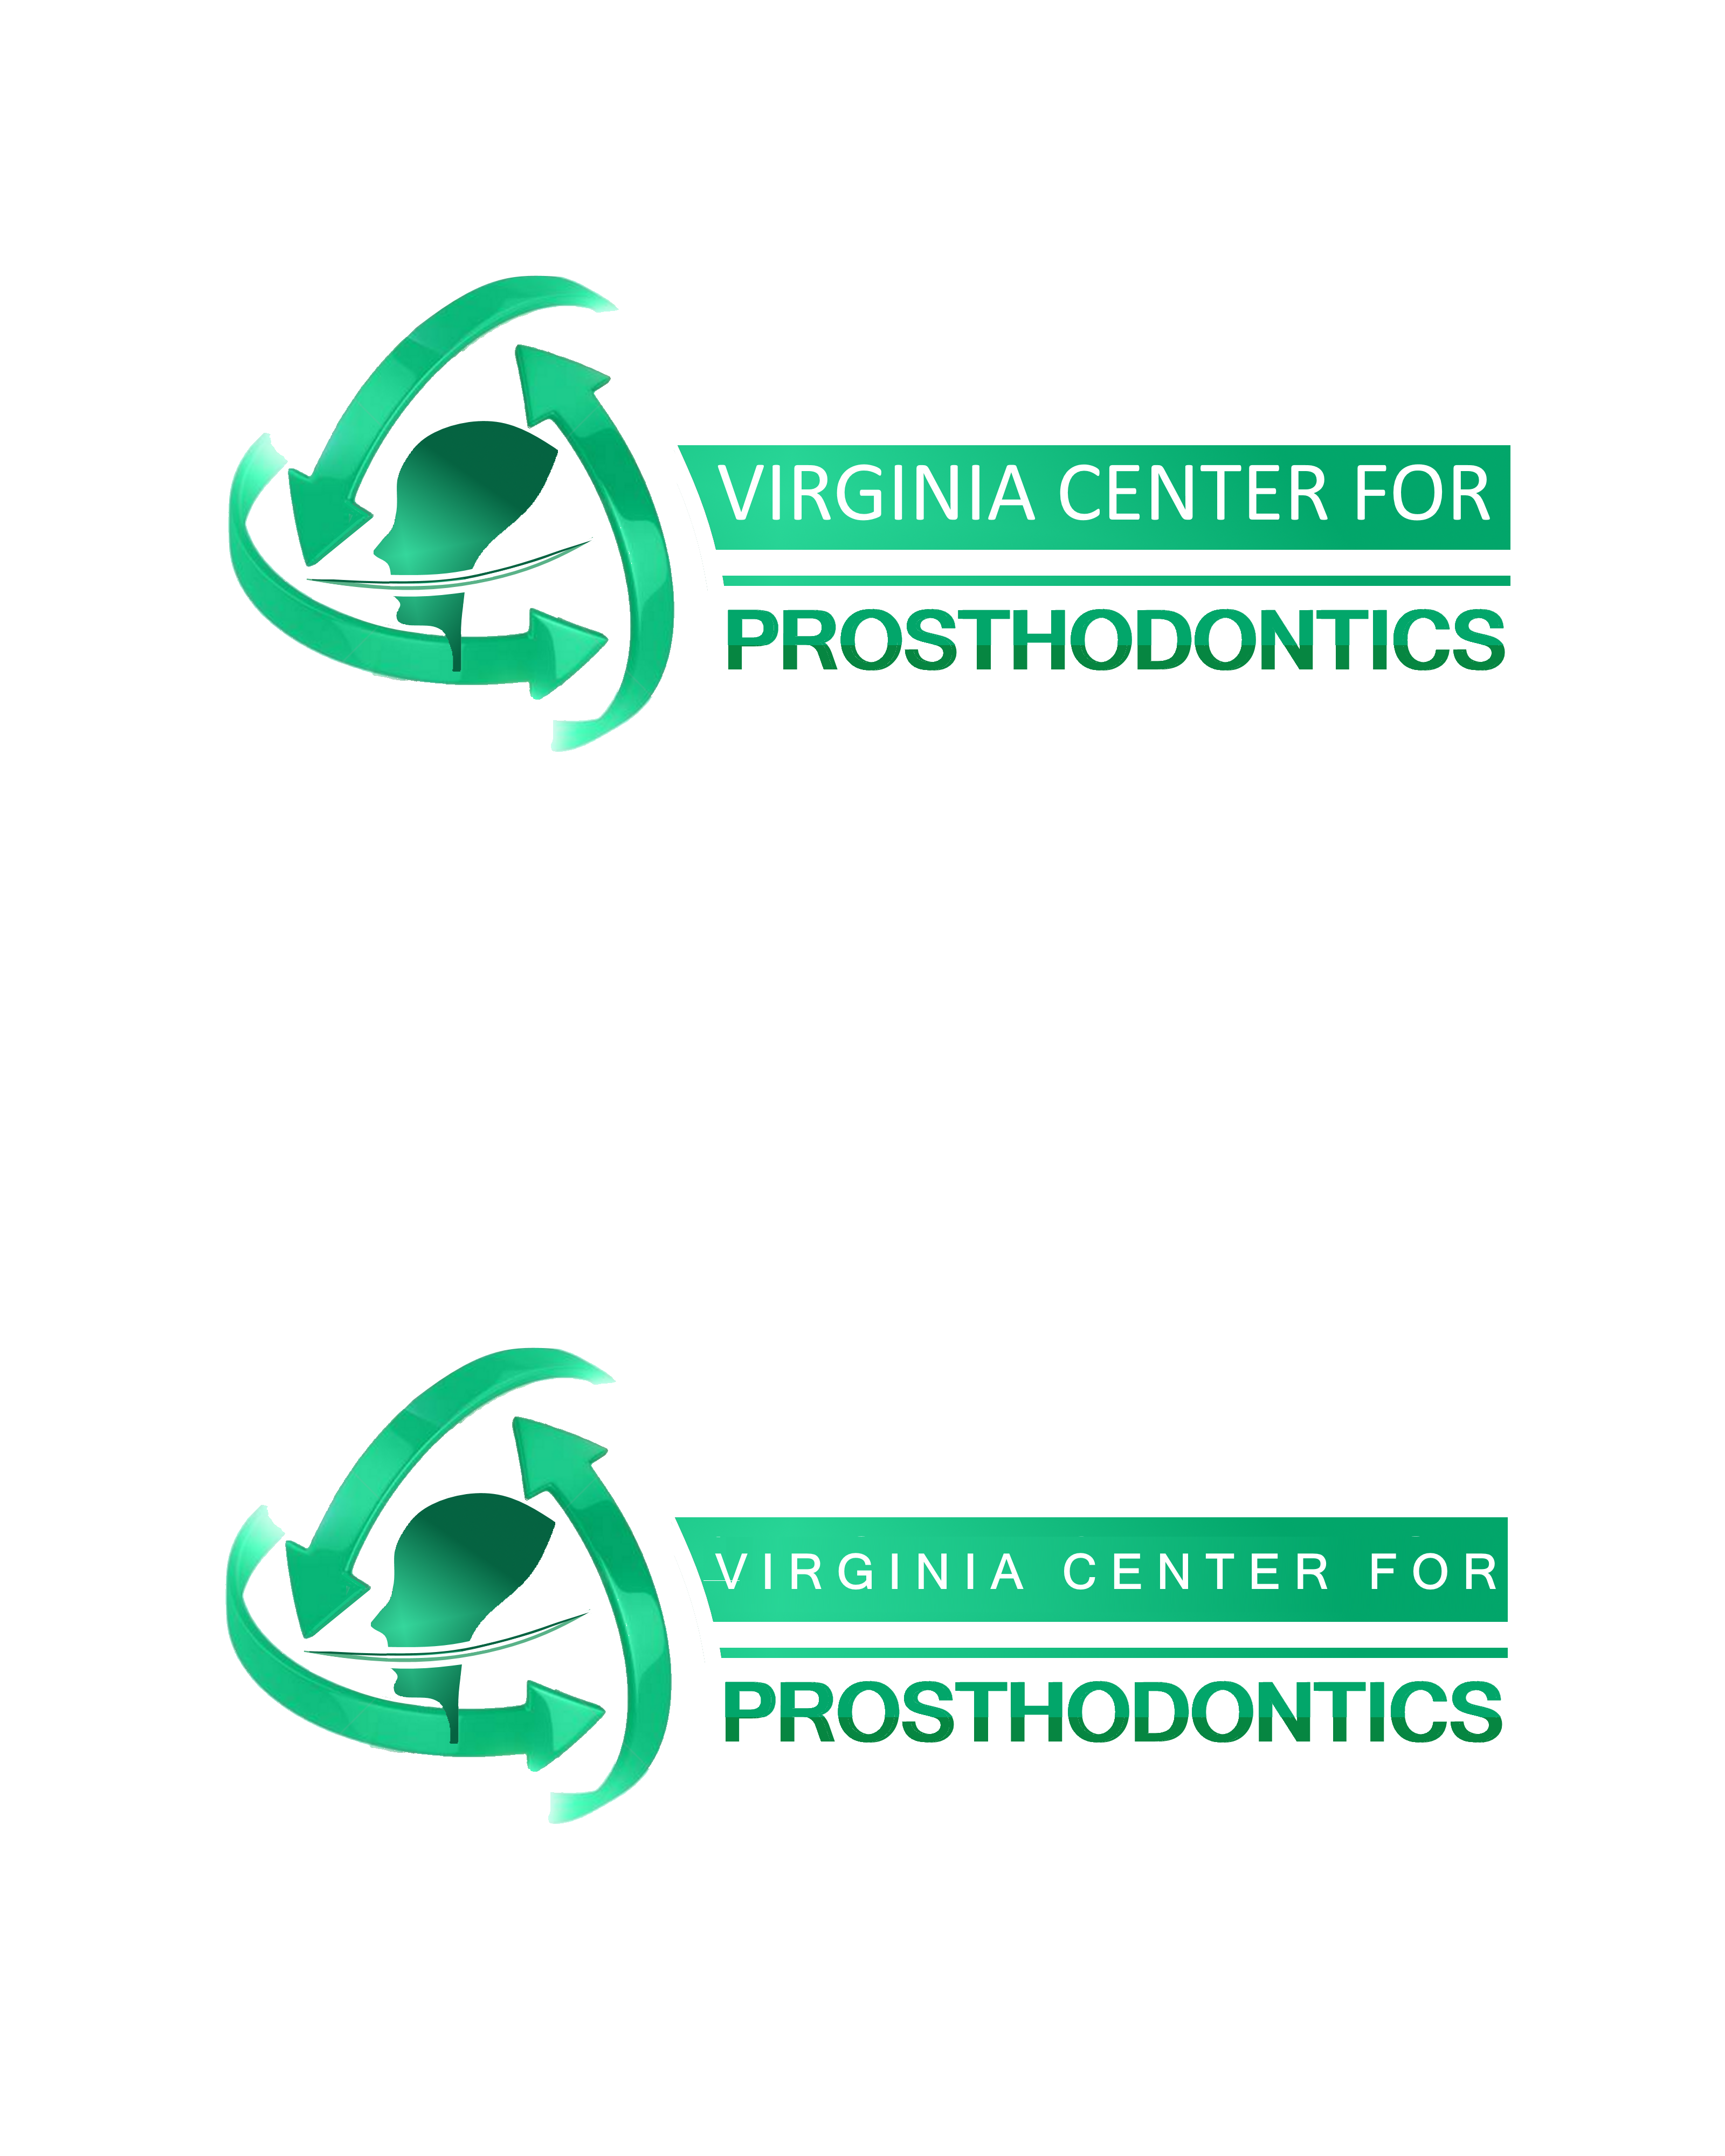 Logo Design by Roberto Bassi - Entry No. 106 in the Logo Design Contest Imaginative Logo Design for Virginia Center for Prosthodontics.